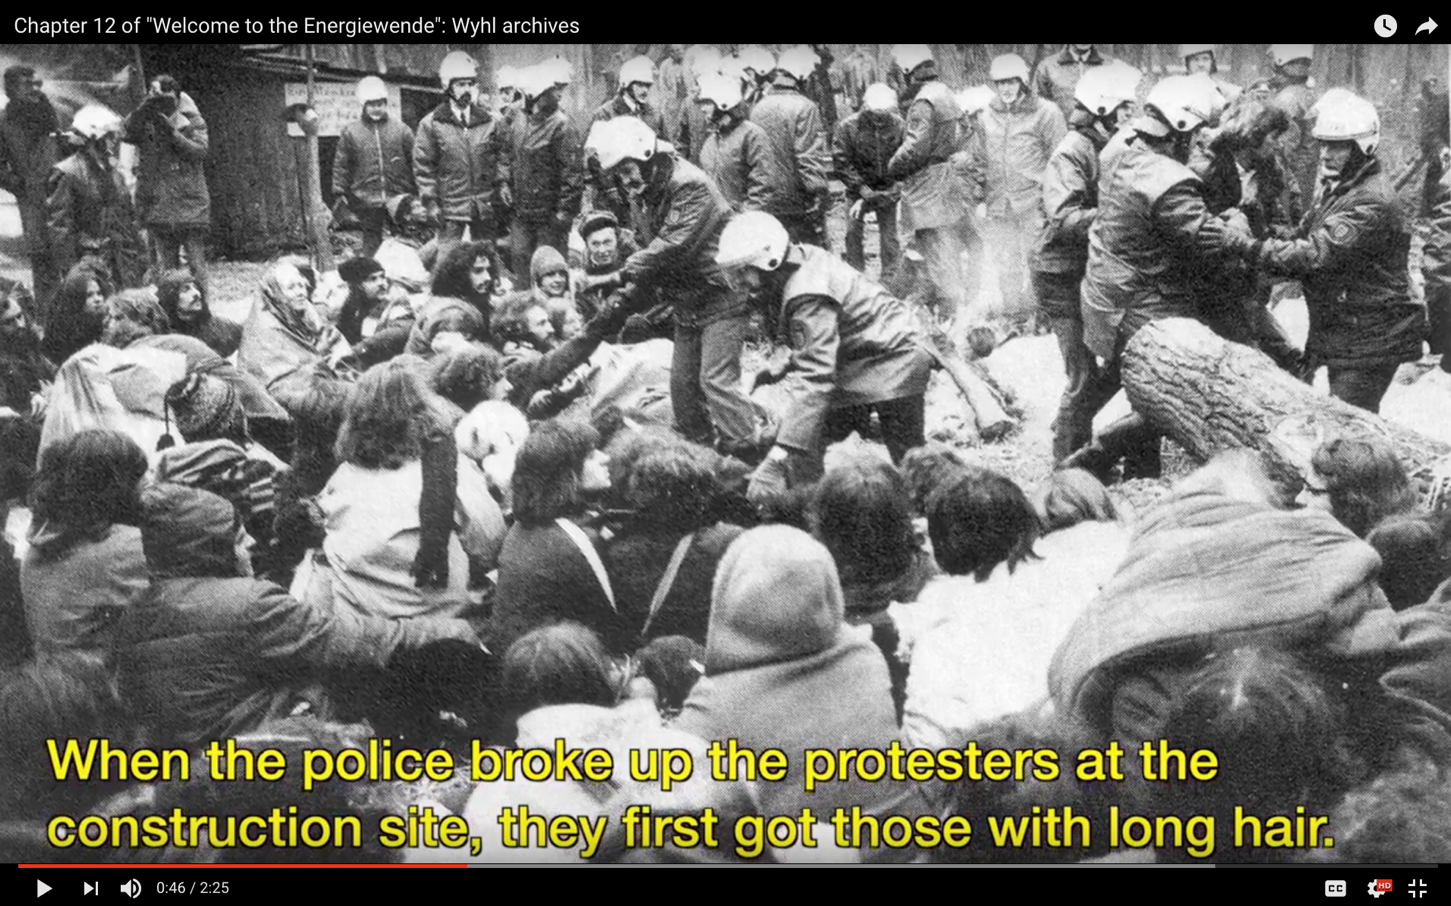 A screenshot from the 2013 documentary Welcome to the Energiewende showing police brutality against German citizens against the industrialization of their lands. Source: Petite Planète.